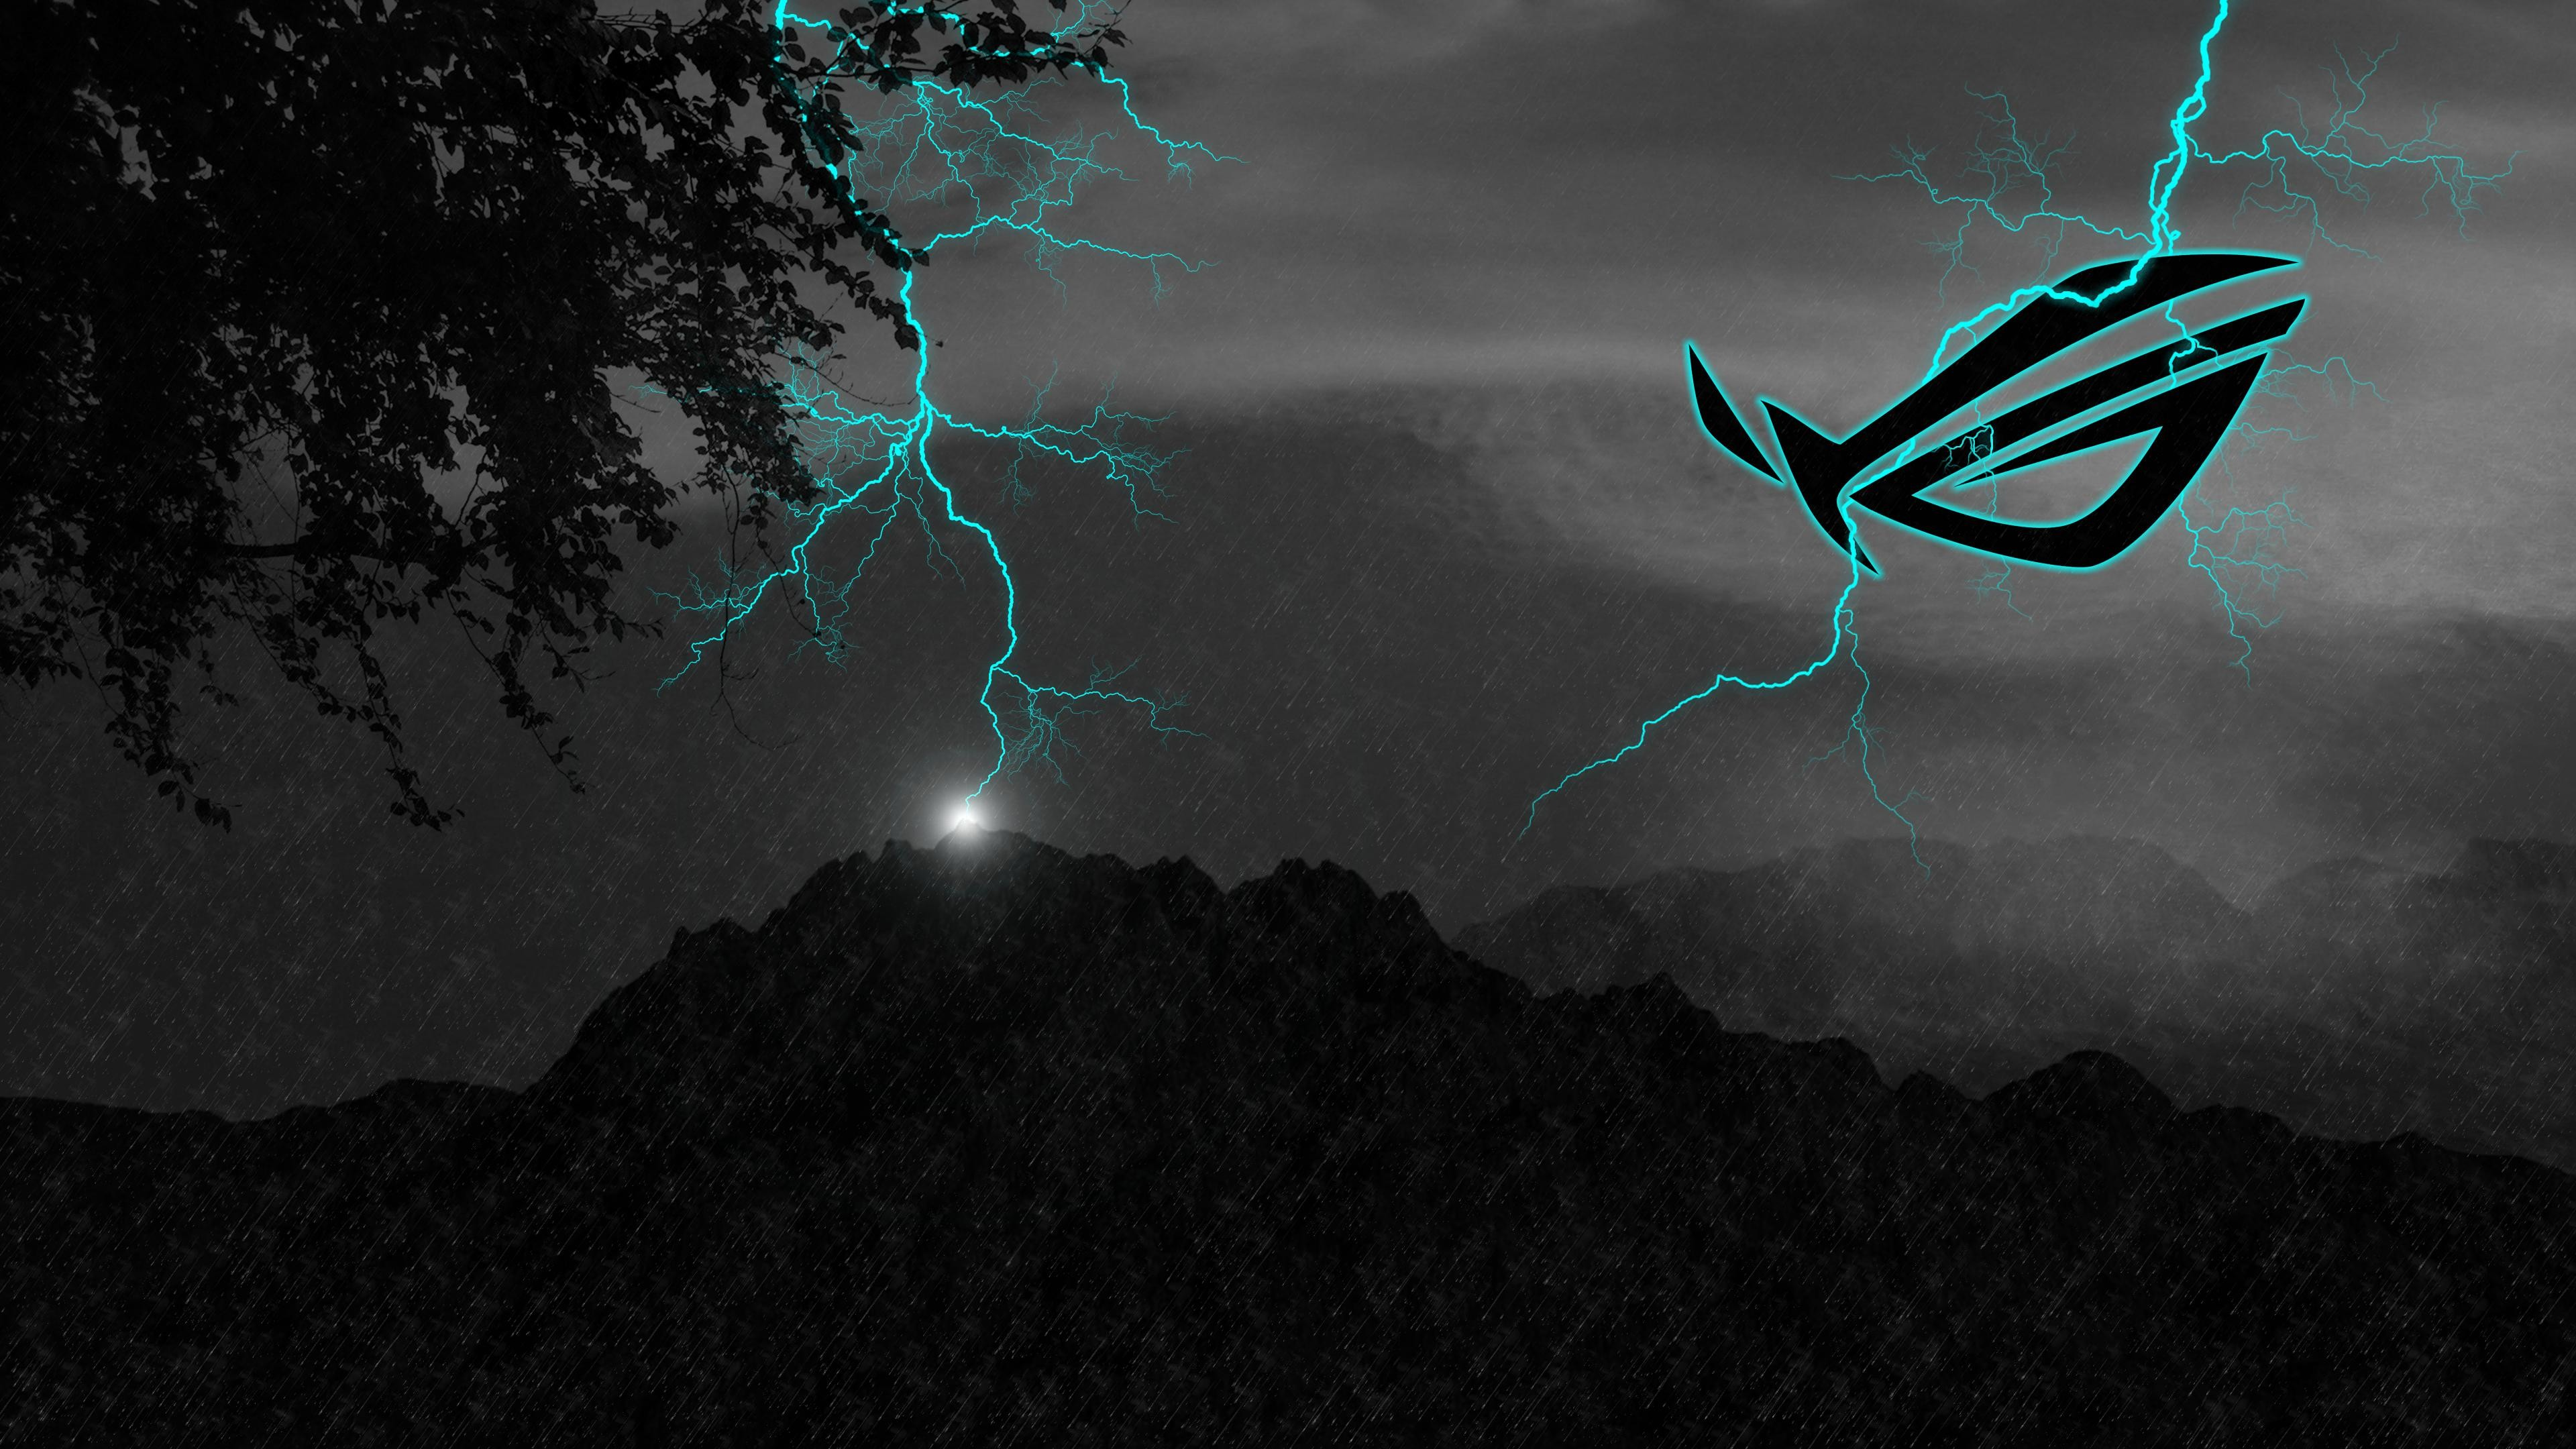 ROG 4K Wallpaper Collection 2014 ::: static_FX [222] – by 3840 x